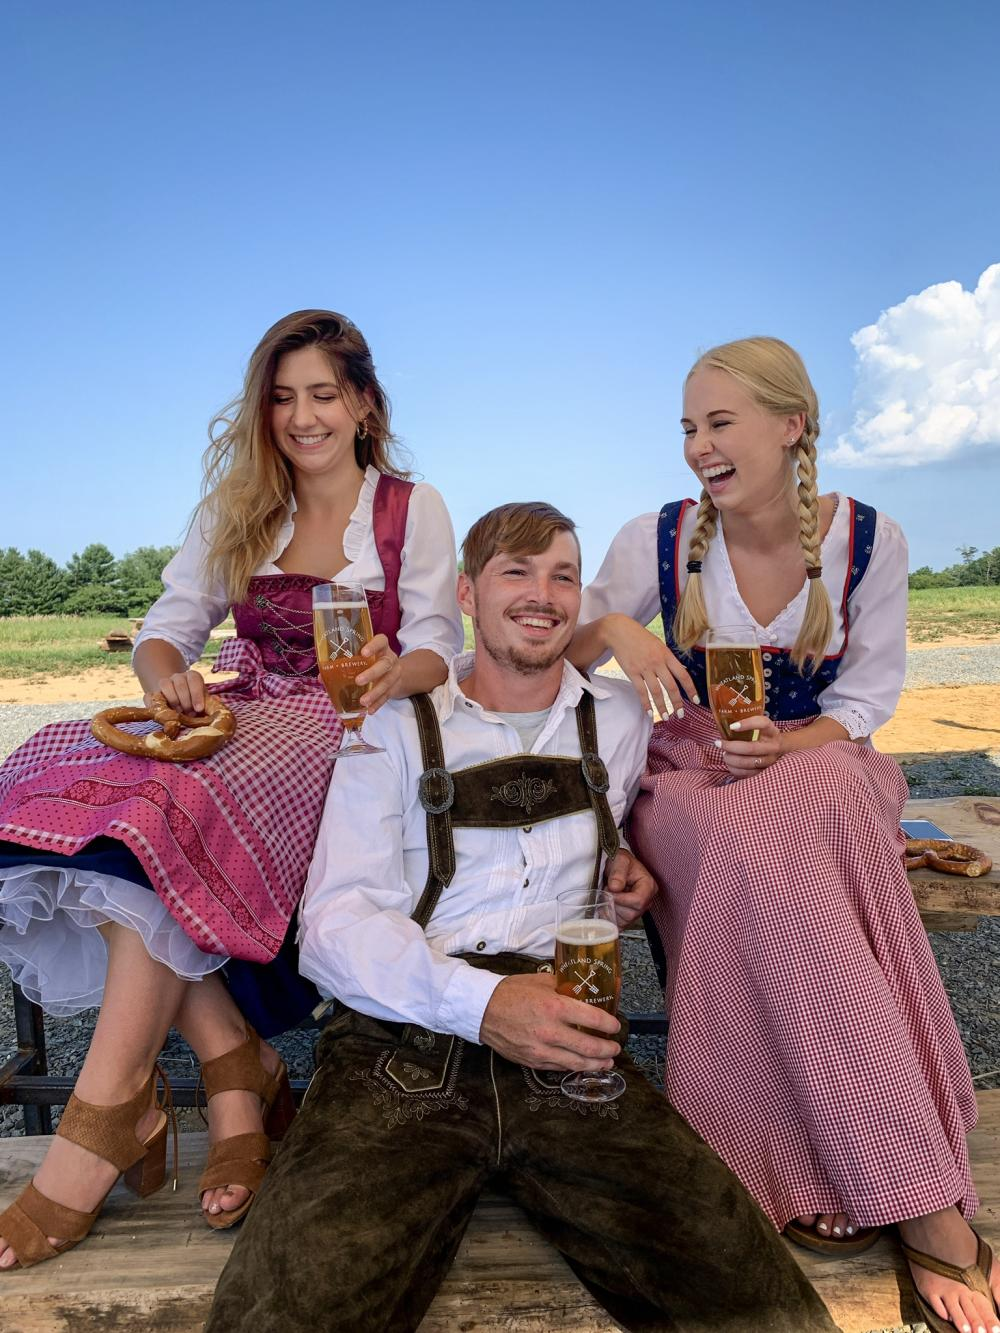 A man and two women laughing with beer in hand for Oktoberfest